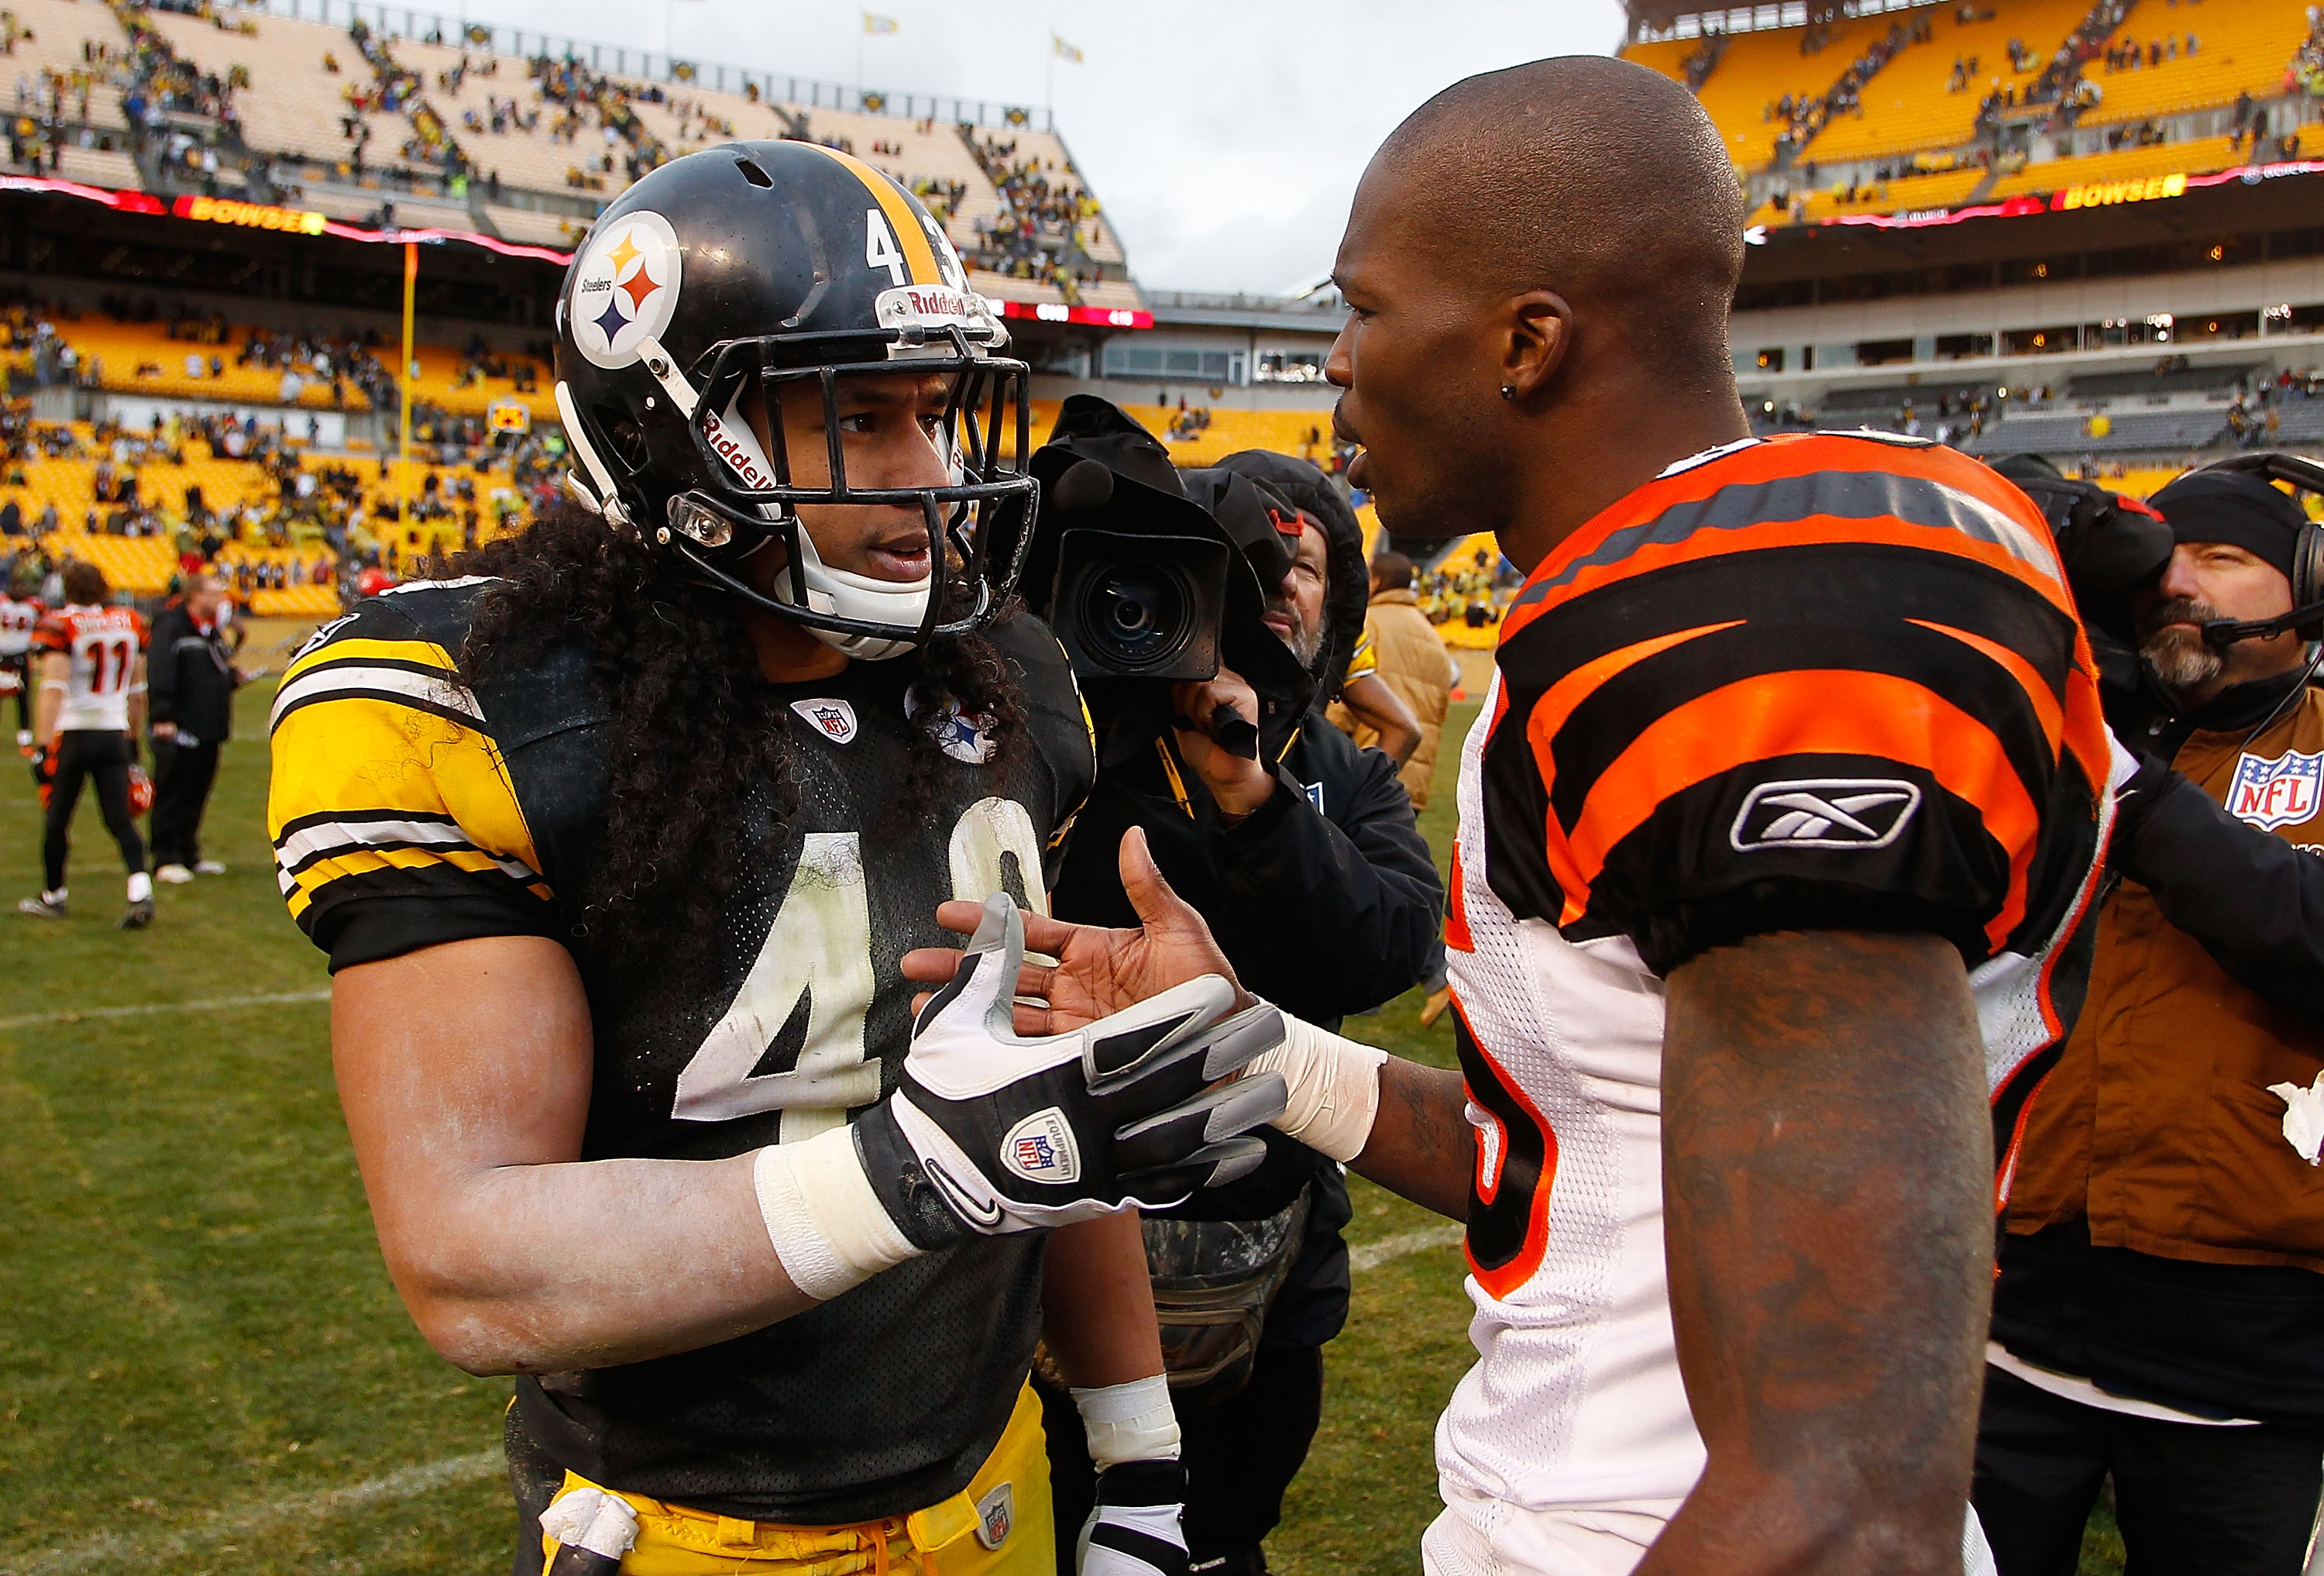 PITTSBURGH - DECEMBER 12:  Troy Polamalu #43 of the Pittsburgh Steelers talks with Chad Ochocinco #85 of the Cincinnati Bengals following the game on December 12, 2010 at Heinz Field in Pittsburgh, Pennsylvania.  (Photo by Jared Wickerham/Getty Images)